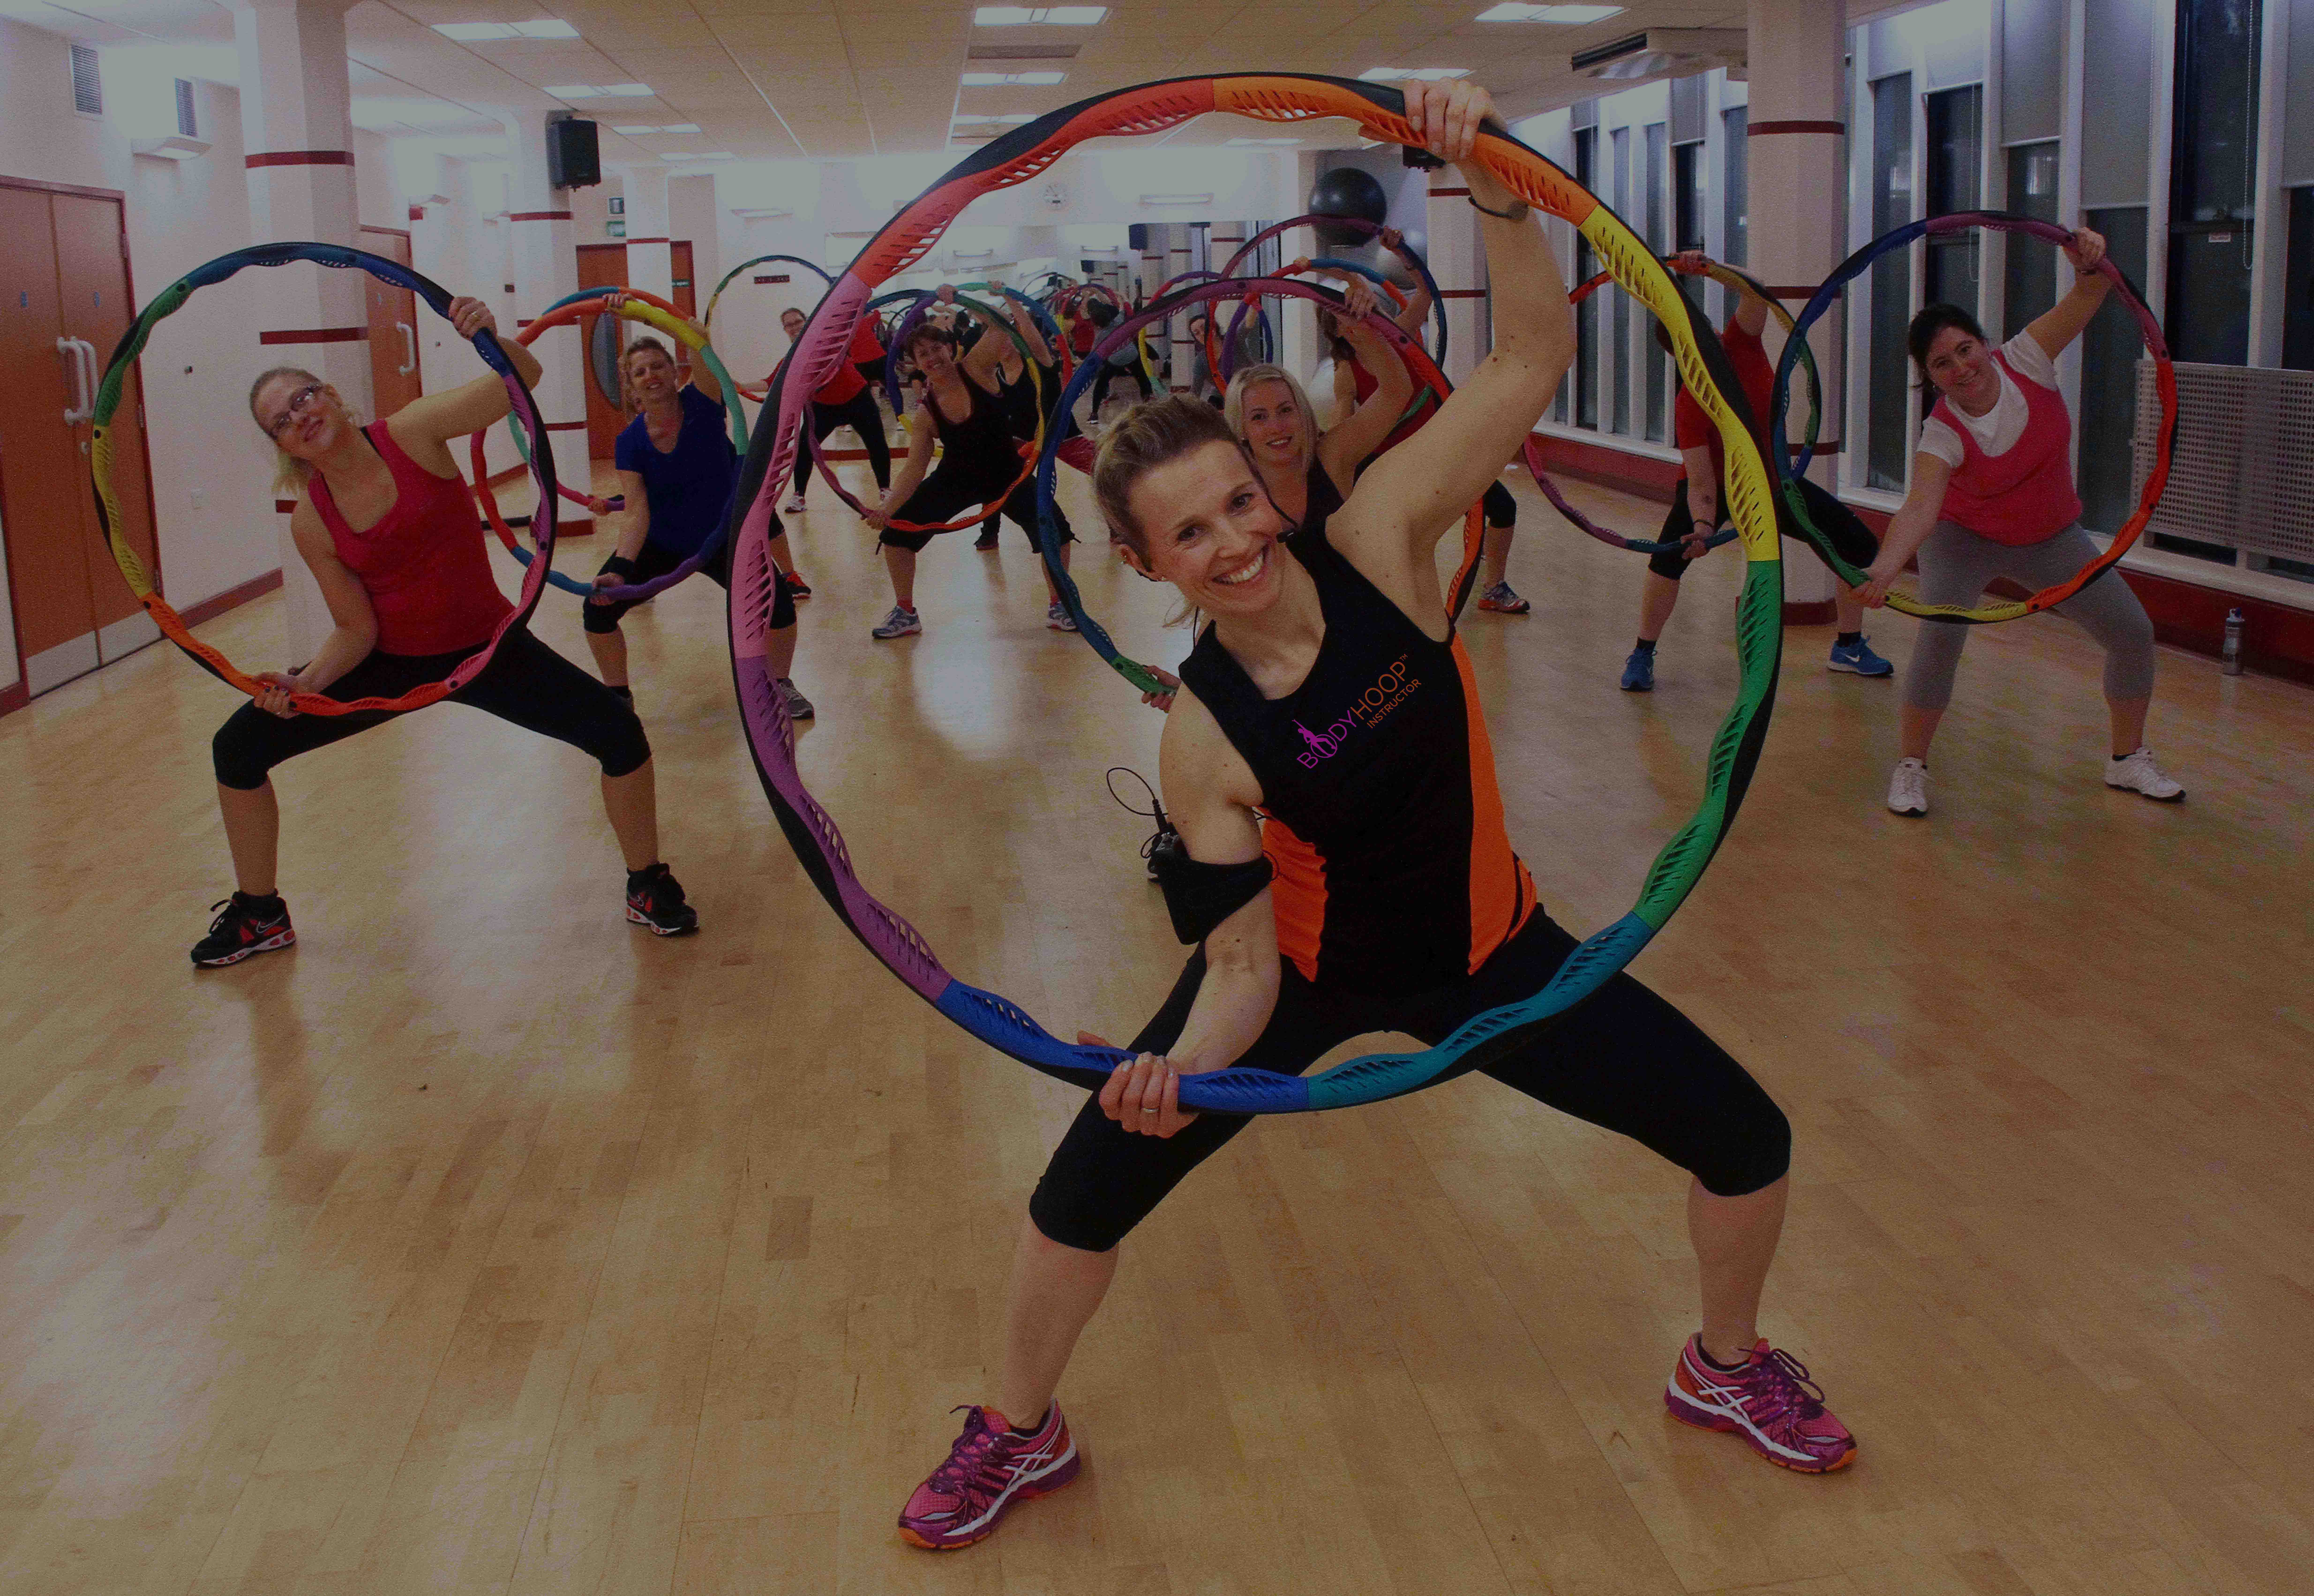 Bodyhoop Instructor Teaching a Fitness Hoop Class